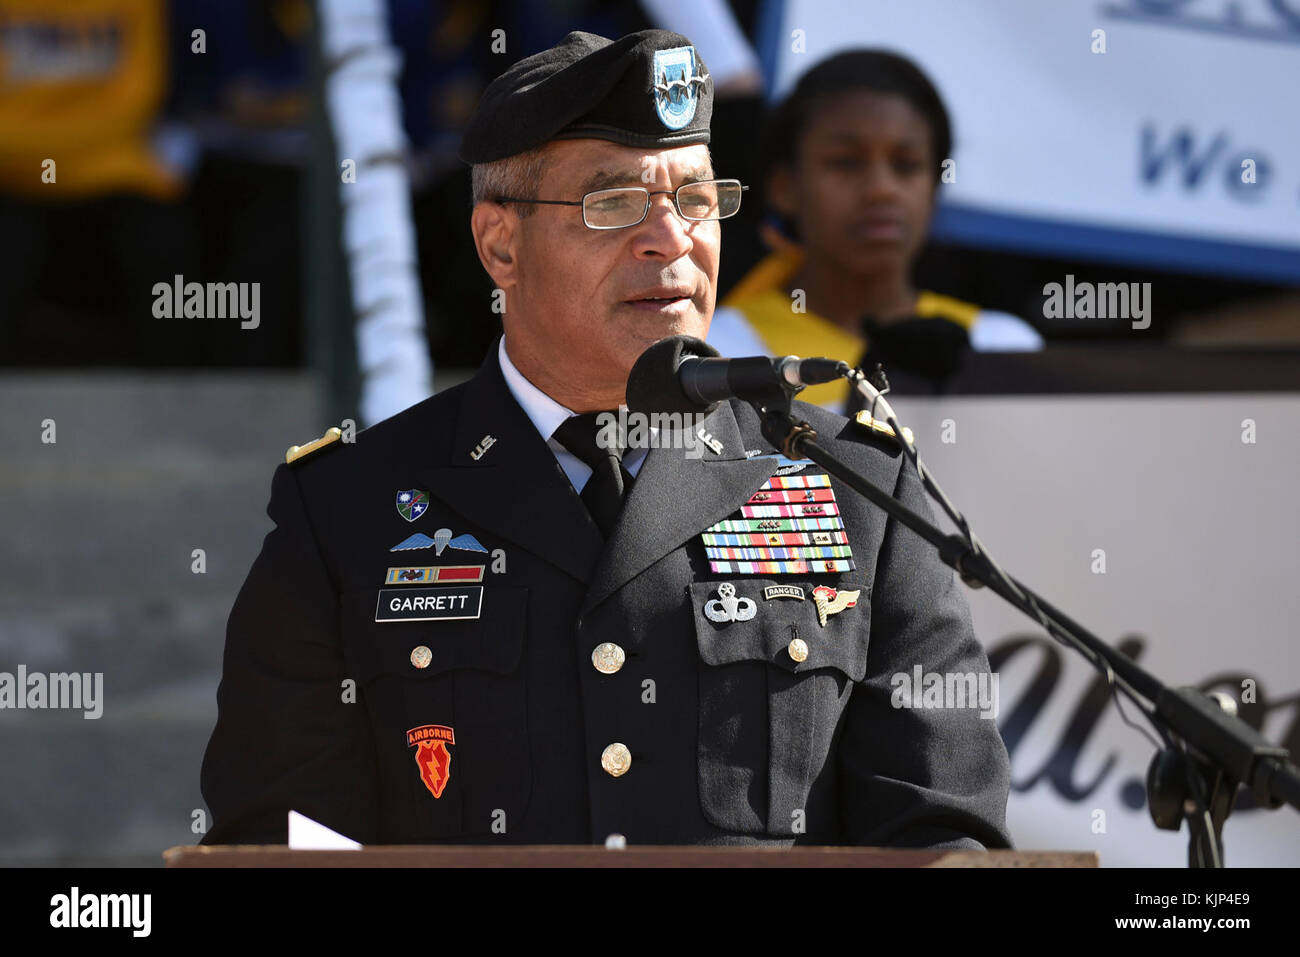 U.S. Army Lt. Gen. Michael Garrett, U.S. Army Central